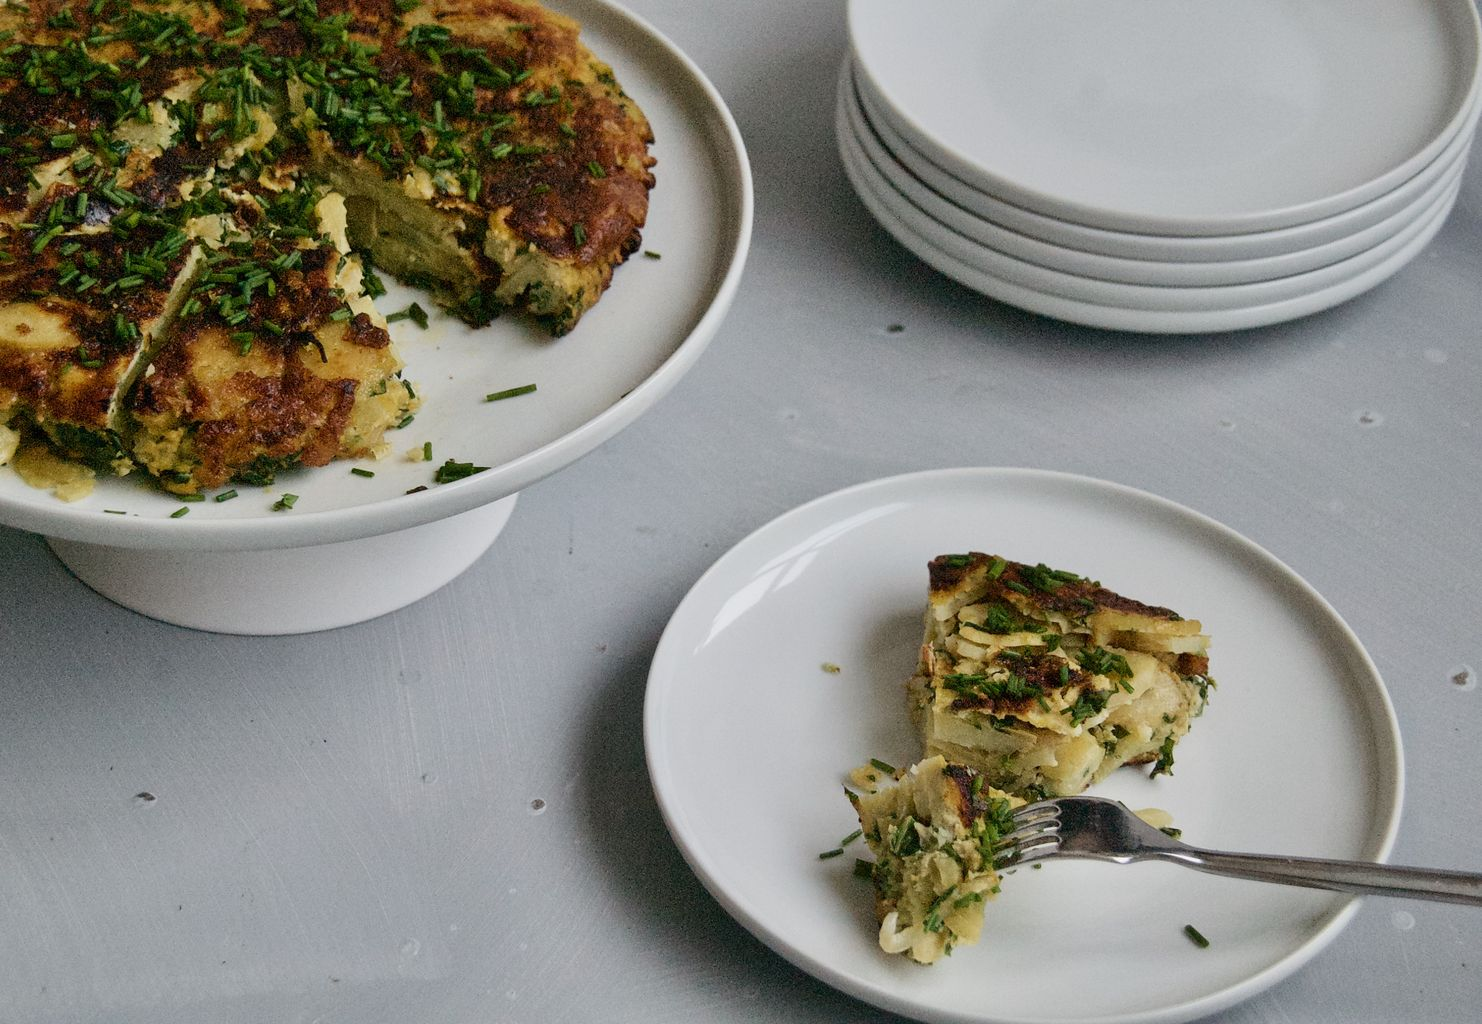 Spanish Tortilla with Kale